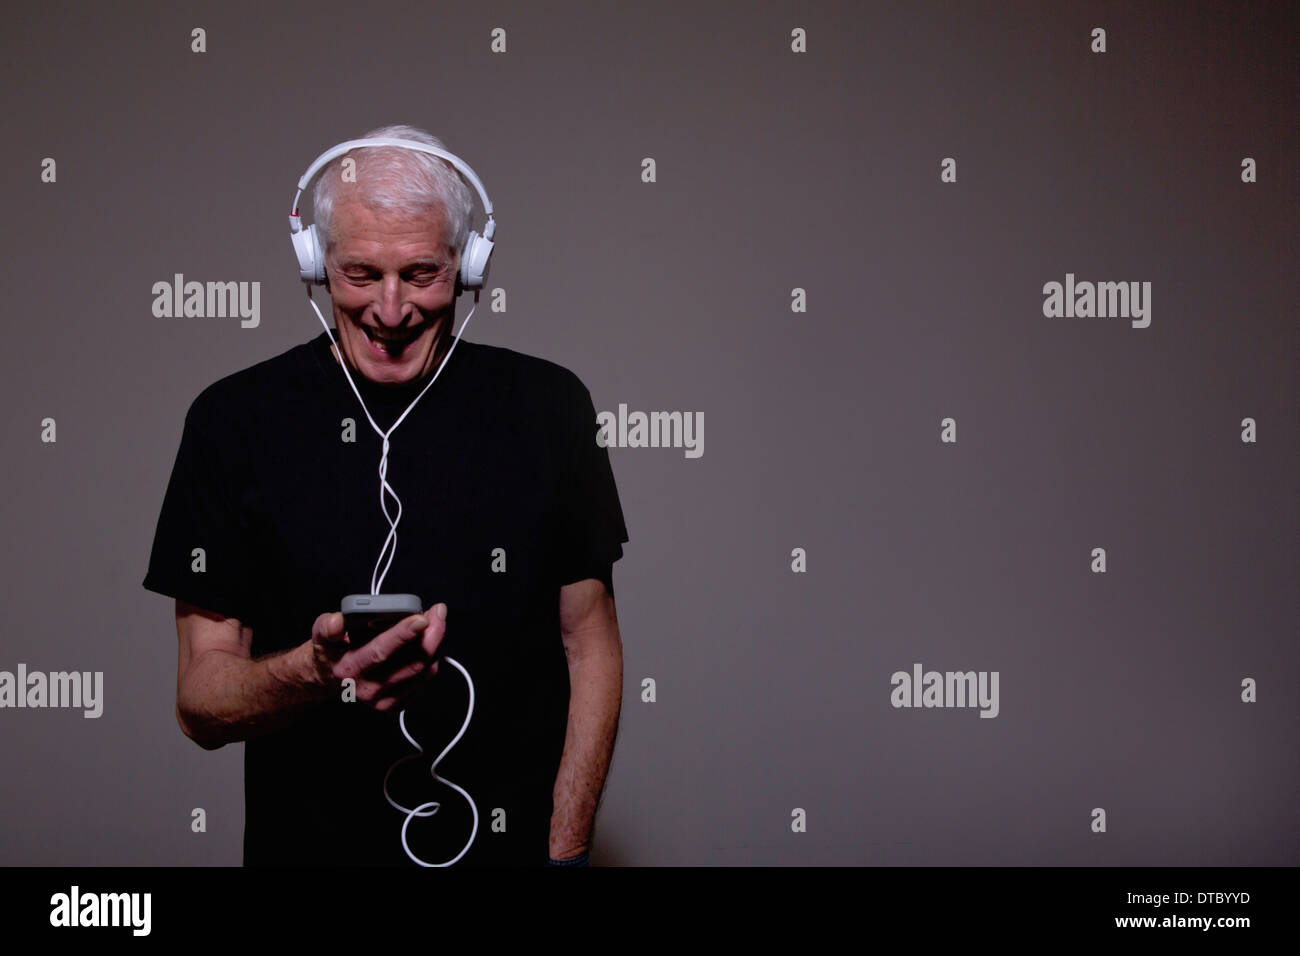 Portrait of senior man wearing headphones and using MP3 player - Stock Image